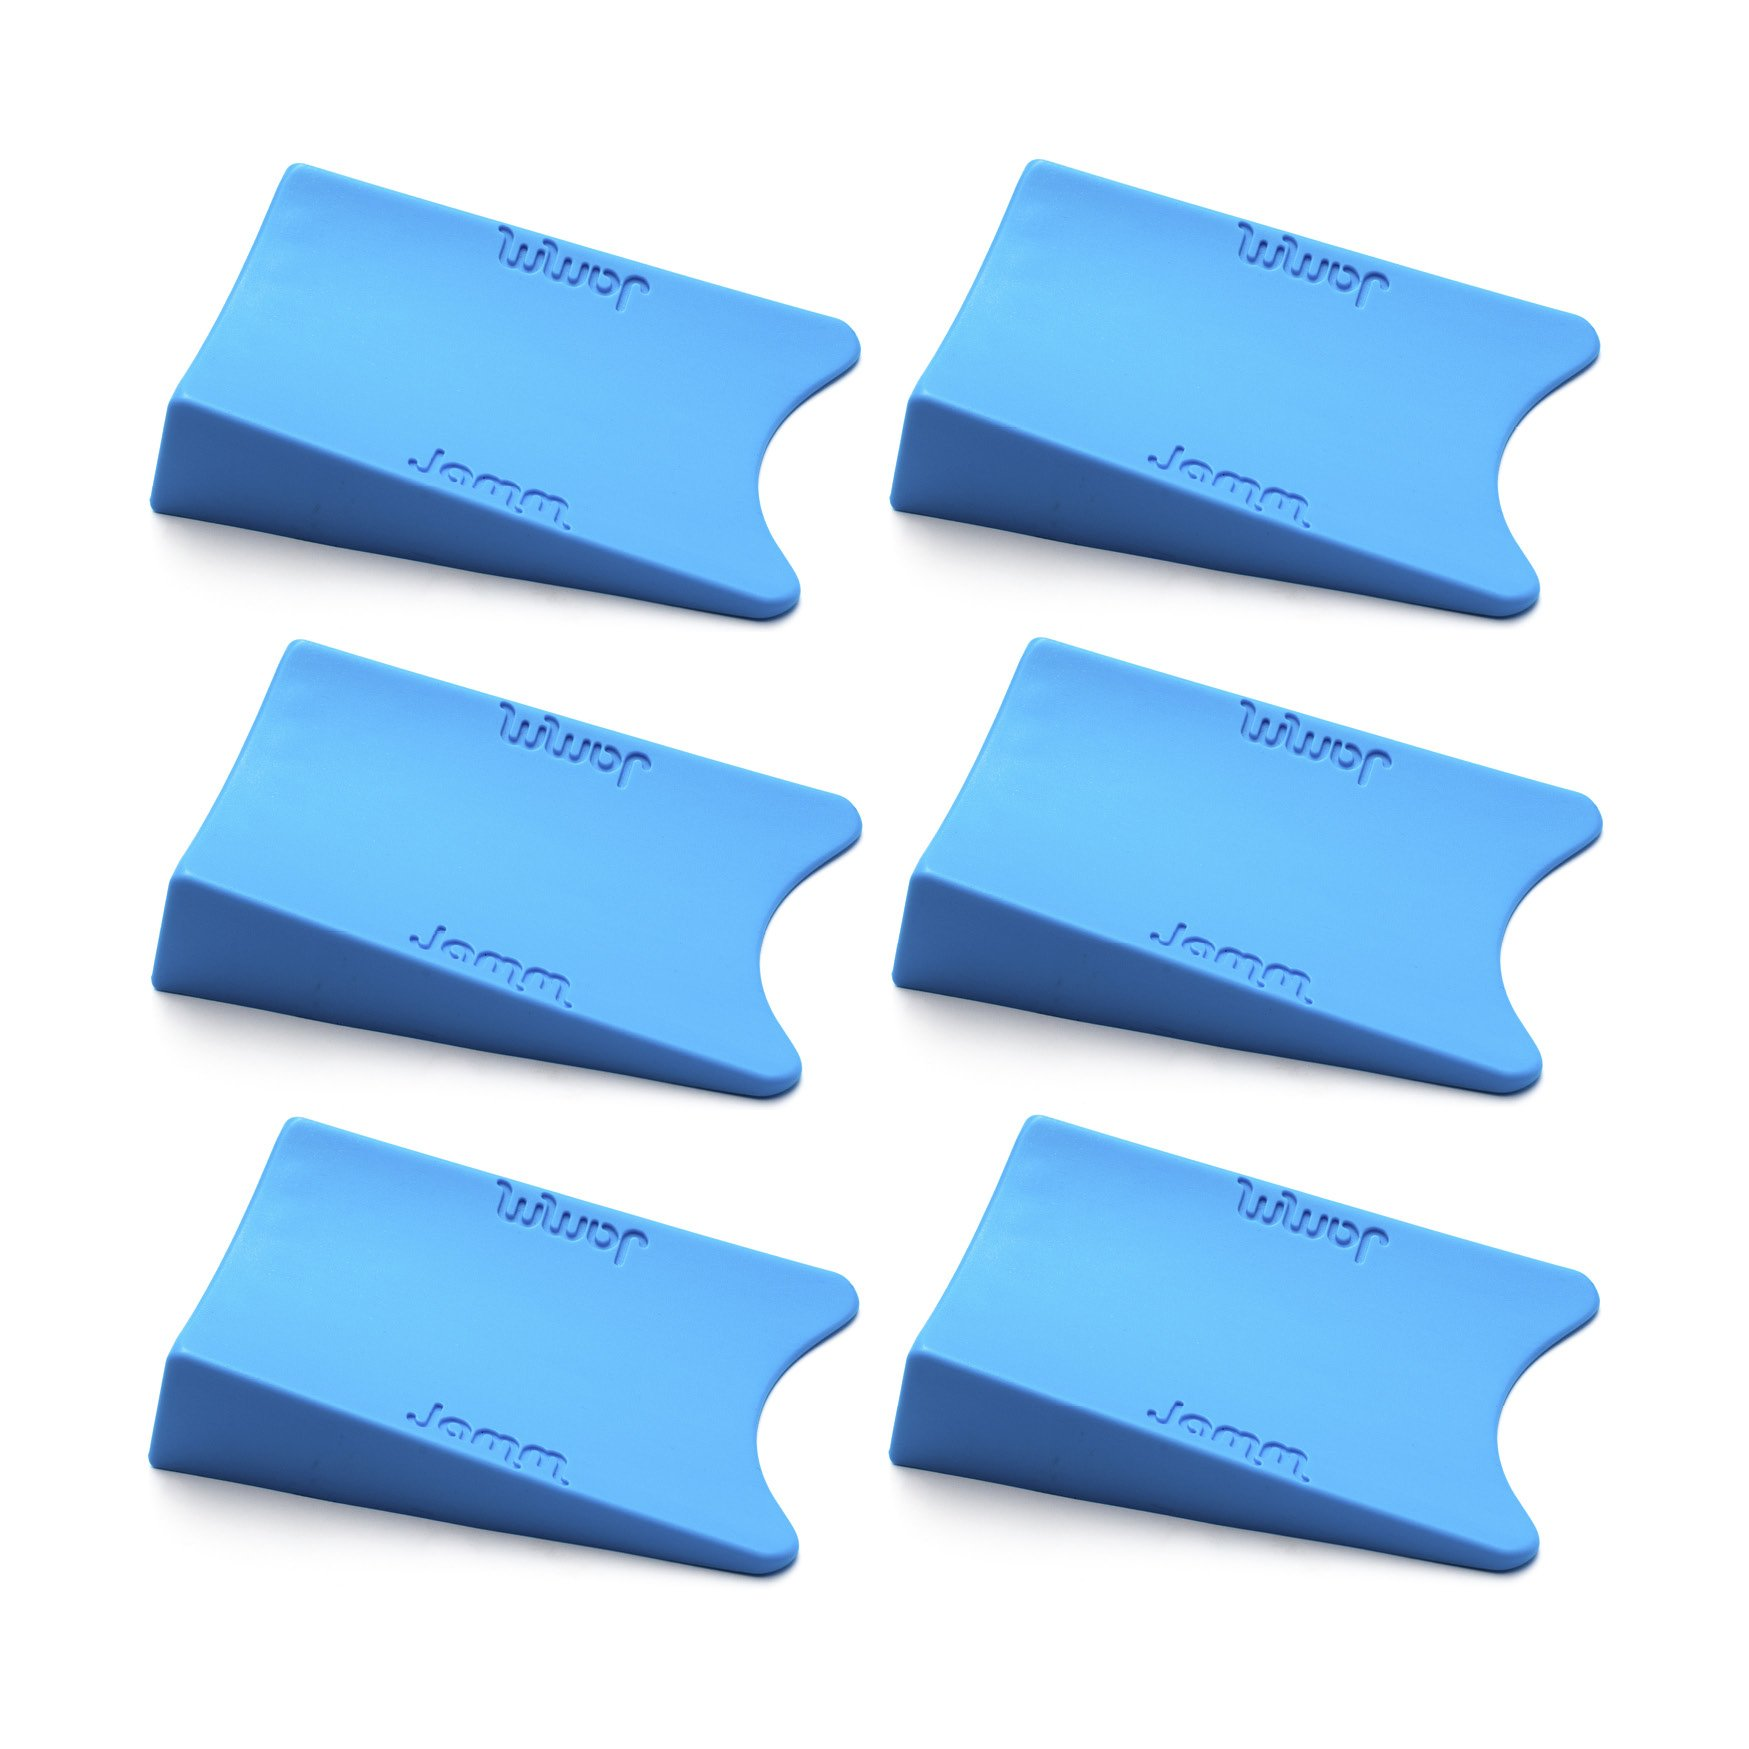 Top Rated Jamm Door Stopper. Patented Door Stop Design Holds Doors in BOTH Directions. Outperforms other Door Stops and Decorative Door Wedges. Premium Non Rubber Hardware Size 1(6 pack, Pacific Blue)